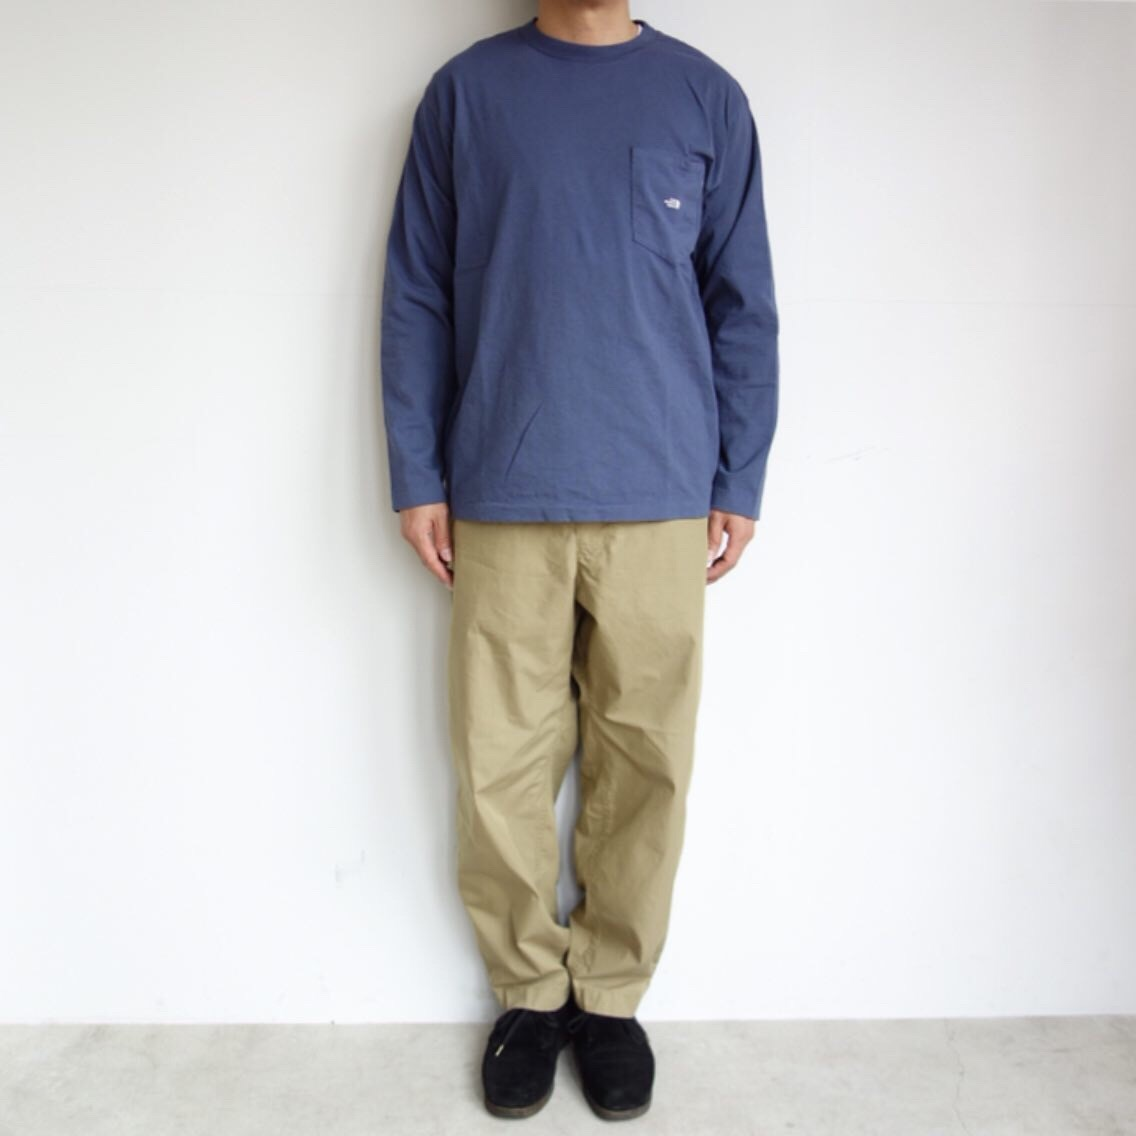 THE NORTH FACE PURPLE LABEL : 7oz L/S Pocket Tee_a0234452_15013751.jpg